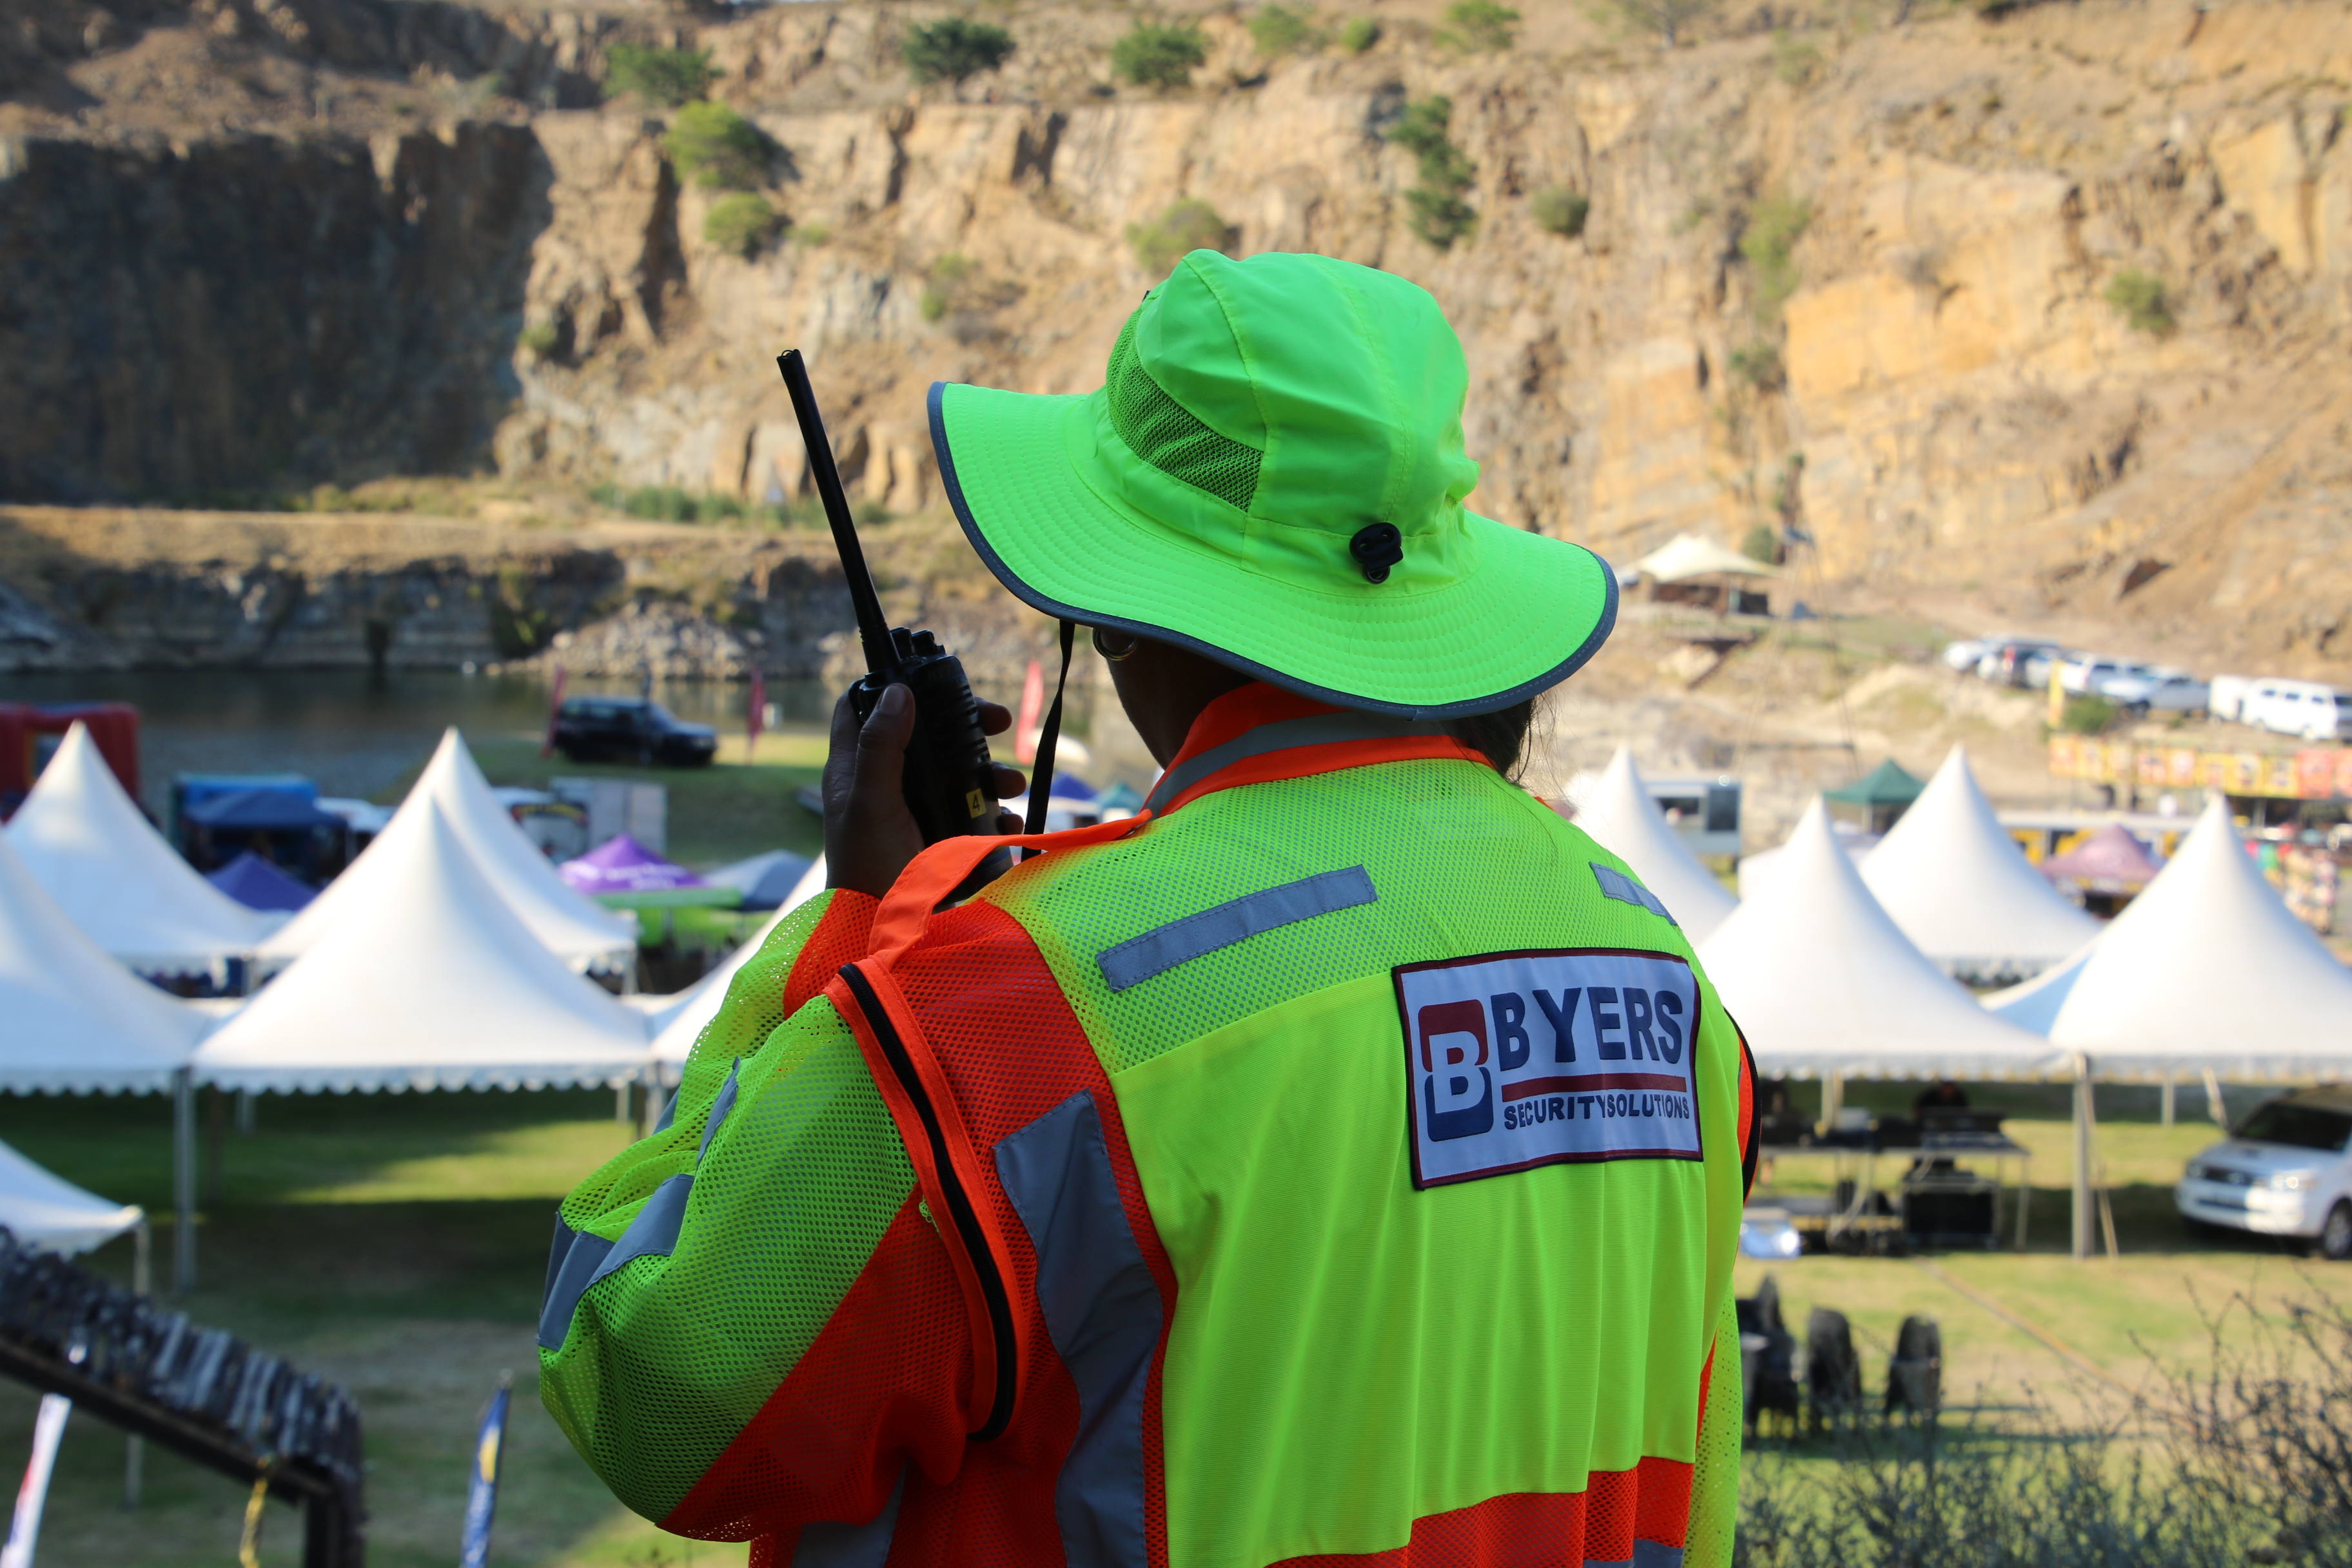 Byers Event Guarding